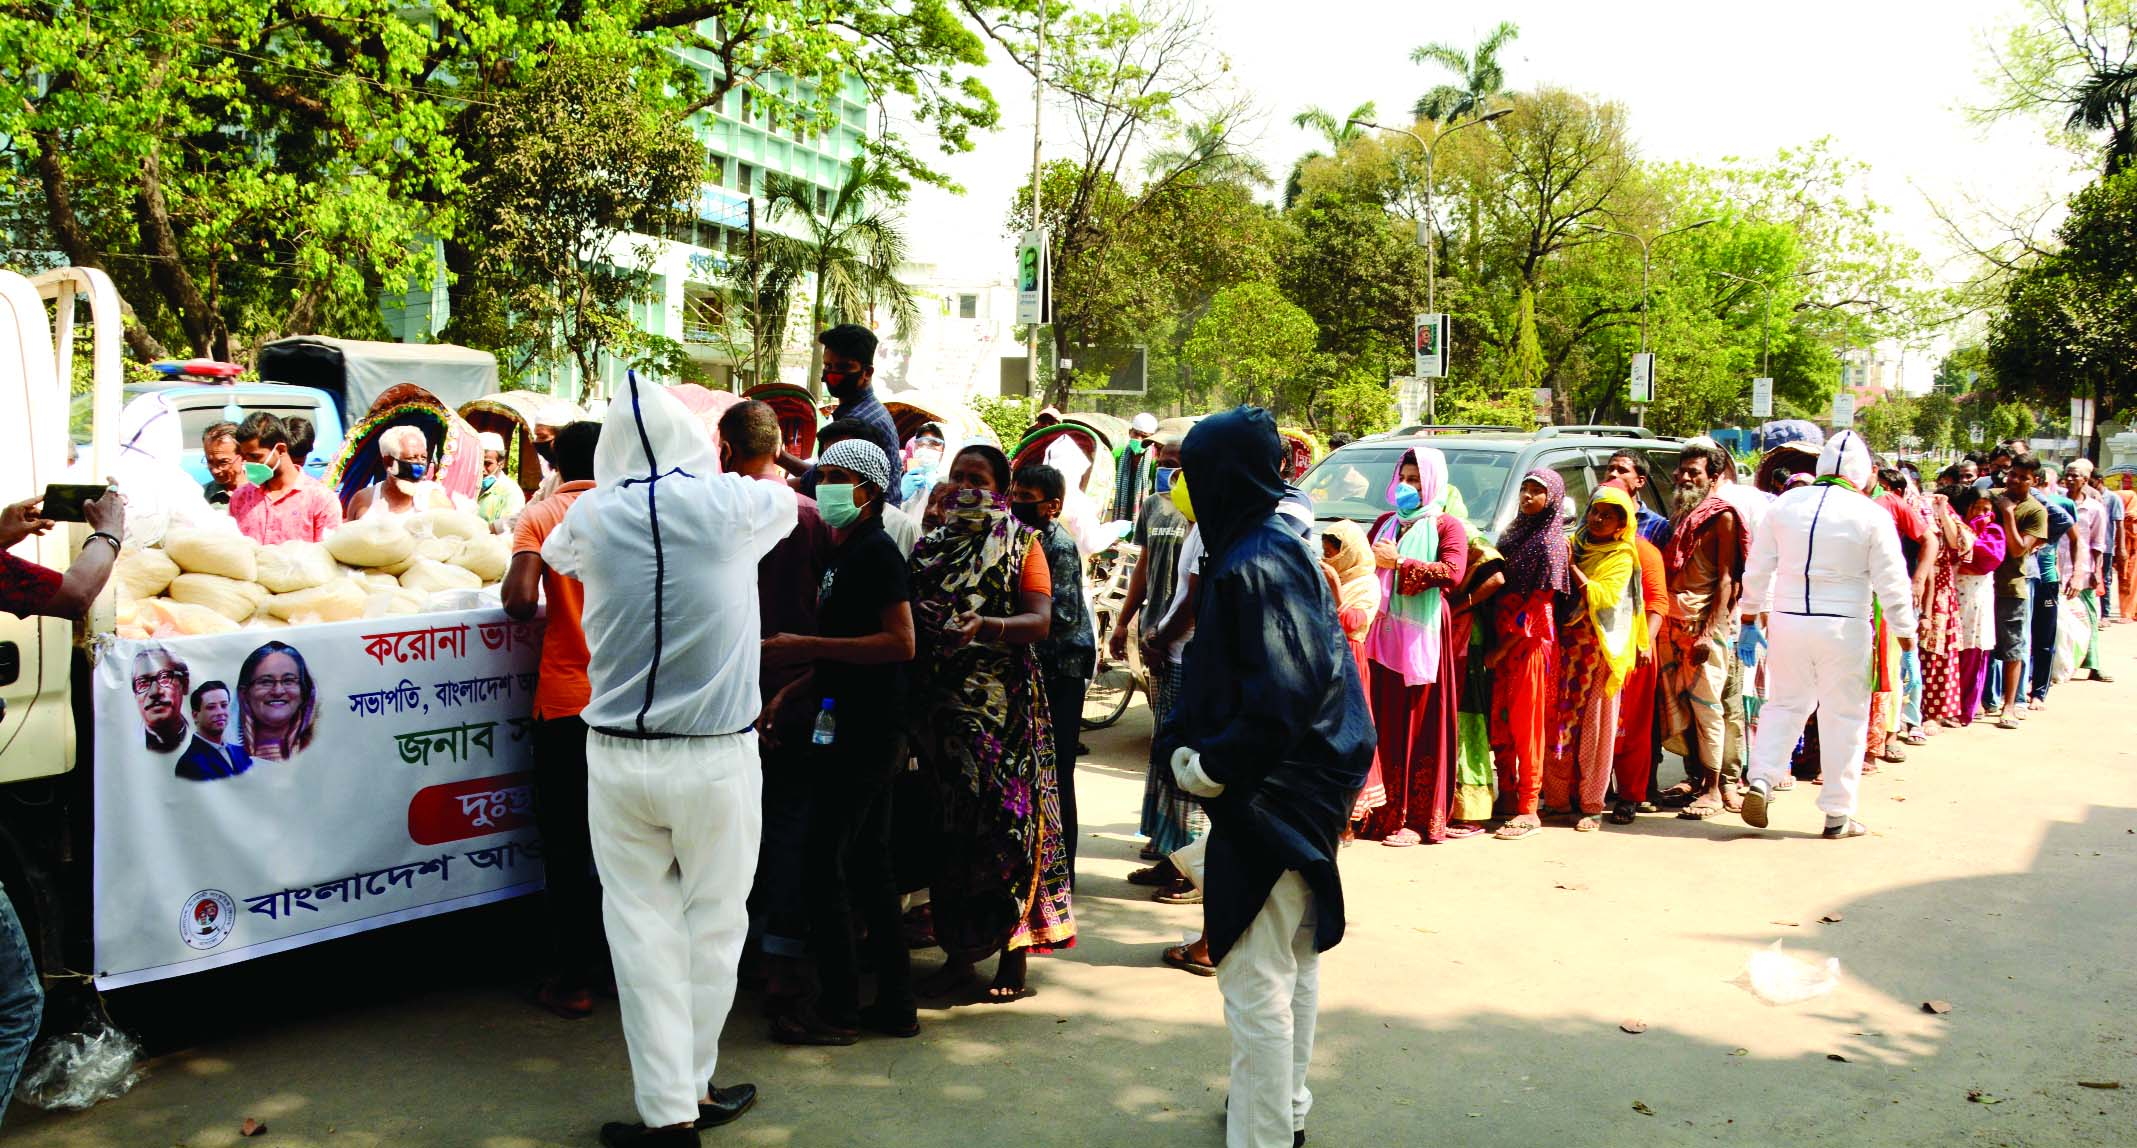 Different government and non-government organisations distributing food among the day-labourers and destitute. The snap was taken from the High Court area on Tuesday.